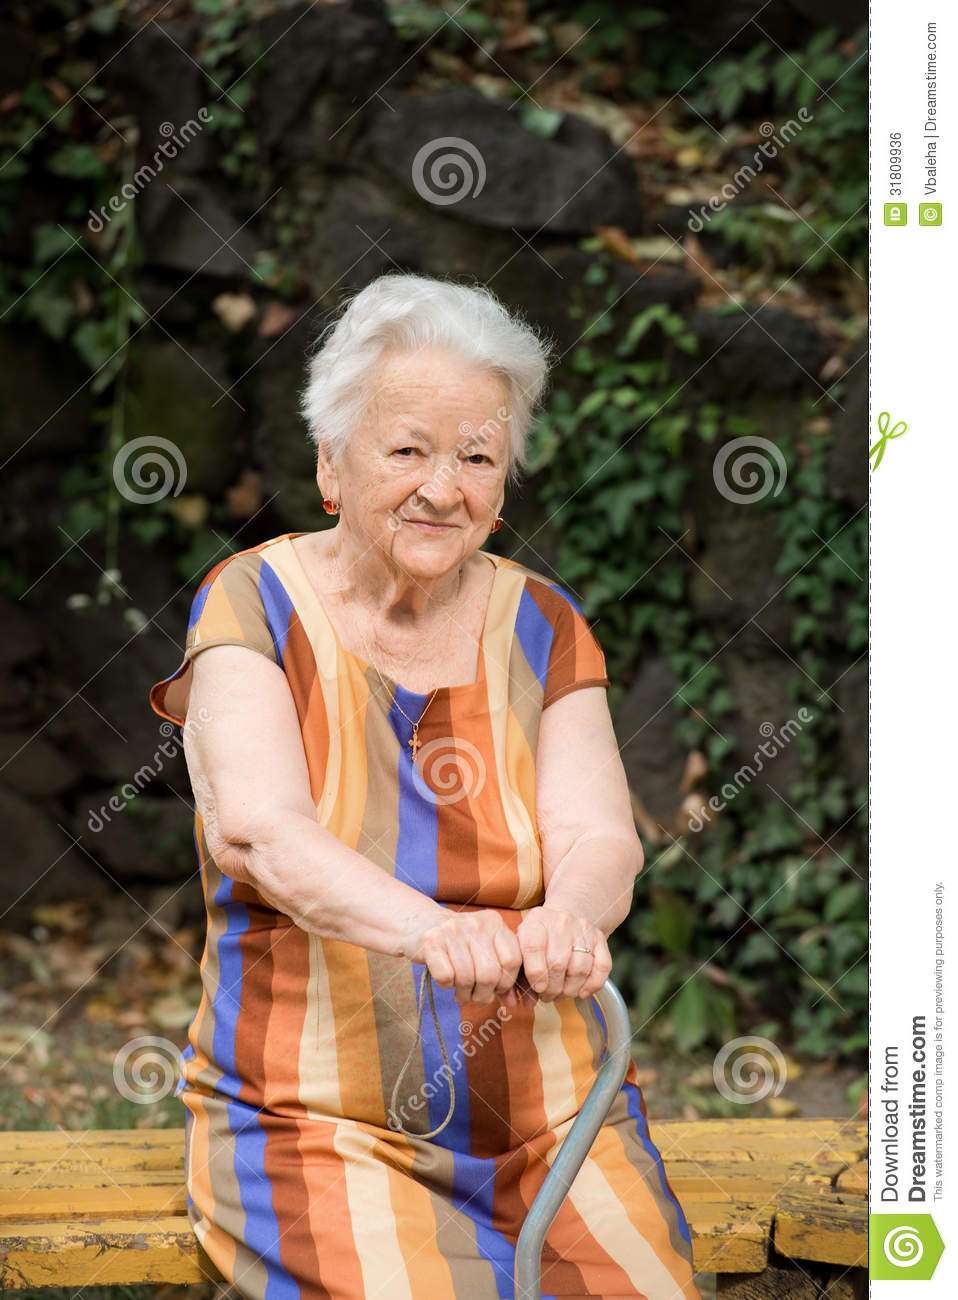 Old Woman Sitting On A Bench Royalty Free Stock Image